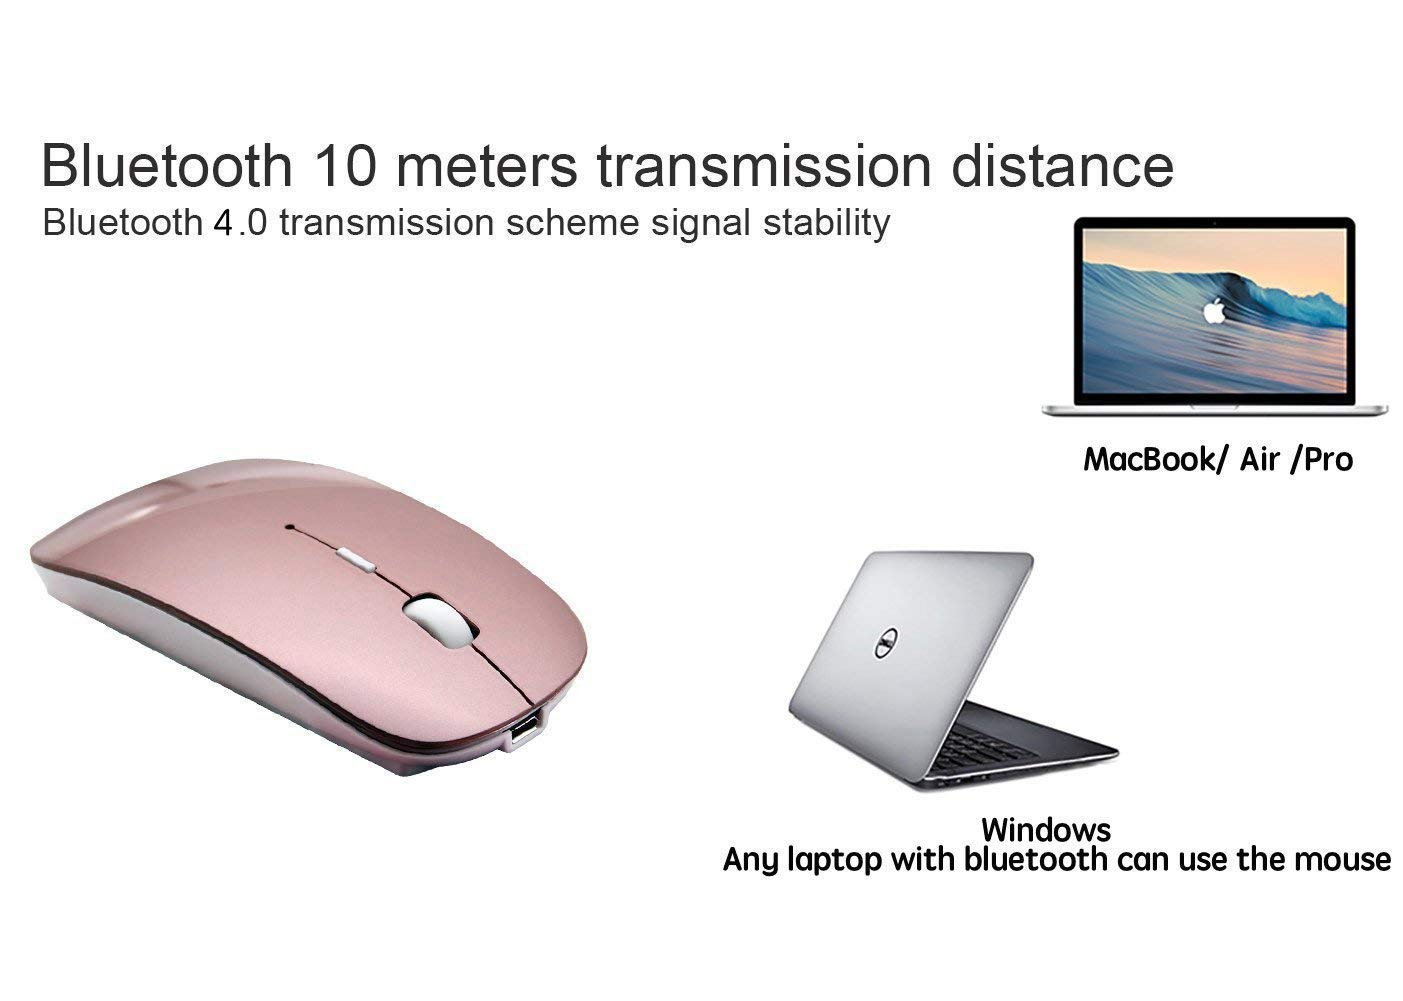 Bluetooth Mouse Wireless Mouse Mobile Mouse Optical Mouse Charging Mouse Applies for Notebook, PC, Laptop, Computer,Windows/Android Tablet, iMac Macbook Air/Pro(Rose Gold) by Bianco (Image #5)